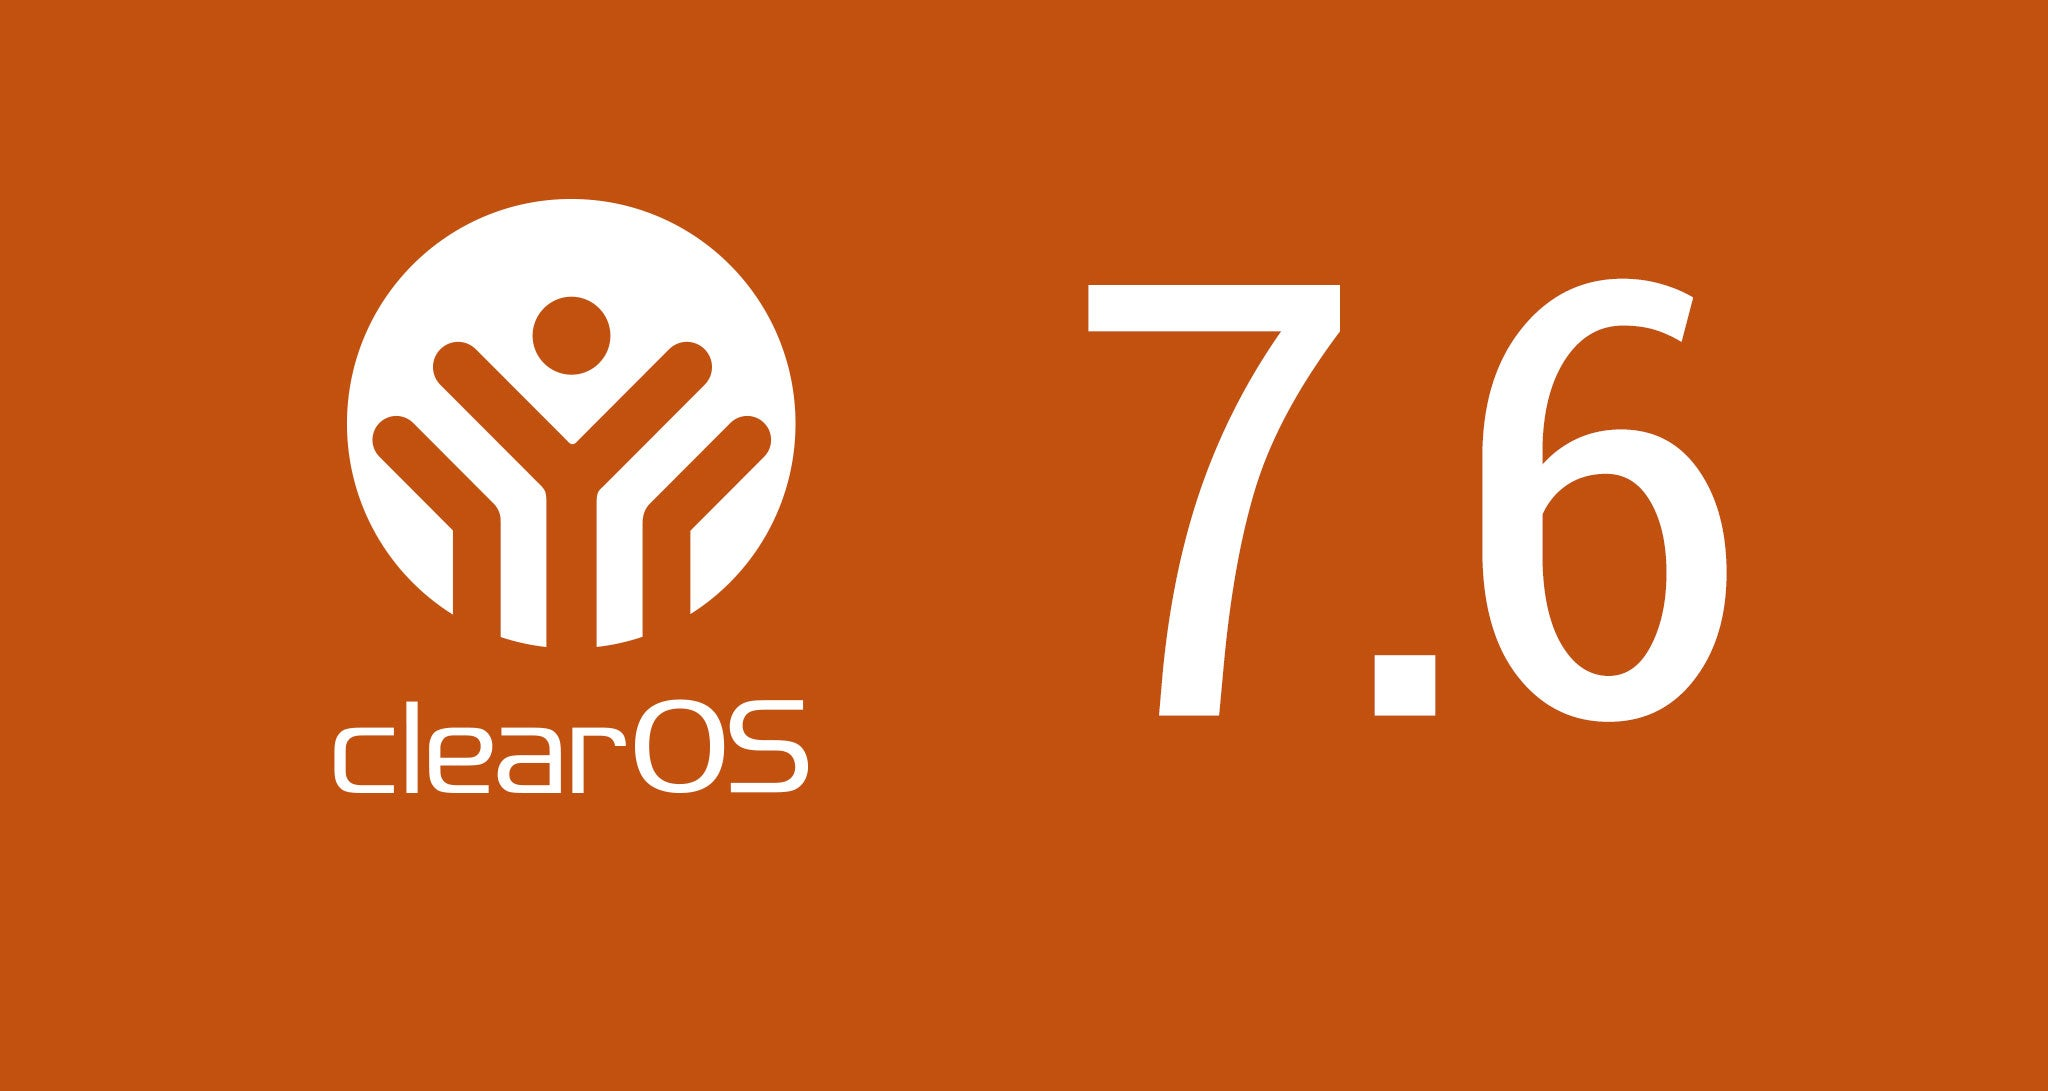 ClearOS Version 7.6 Released for All Editions